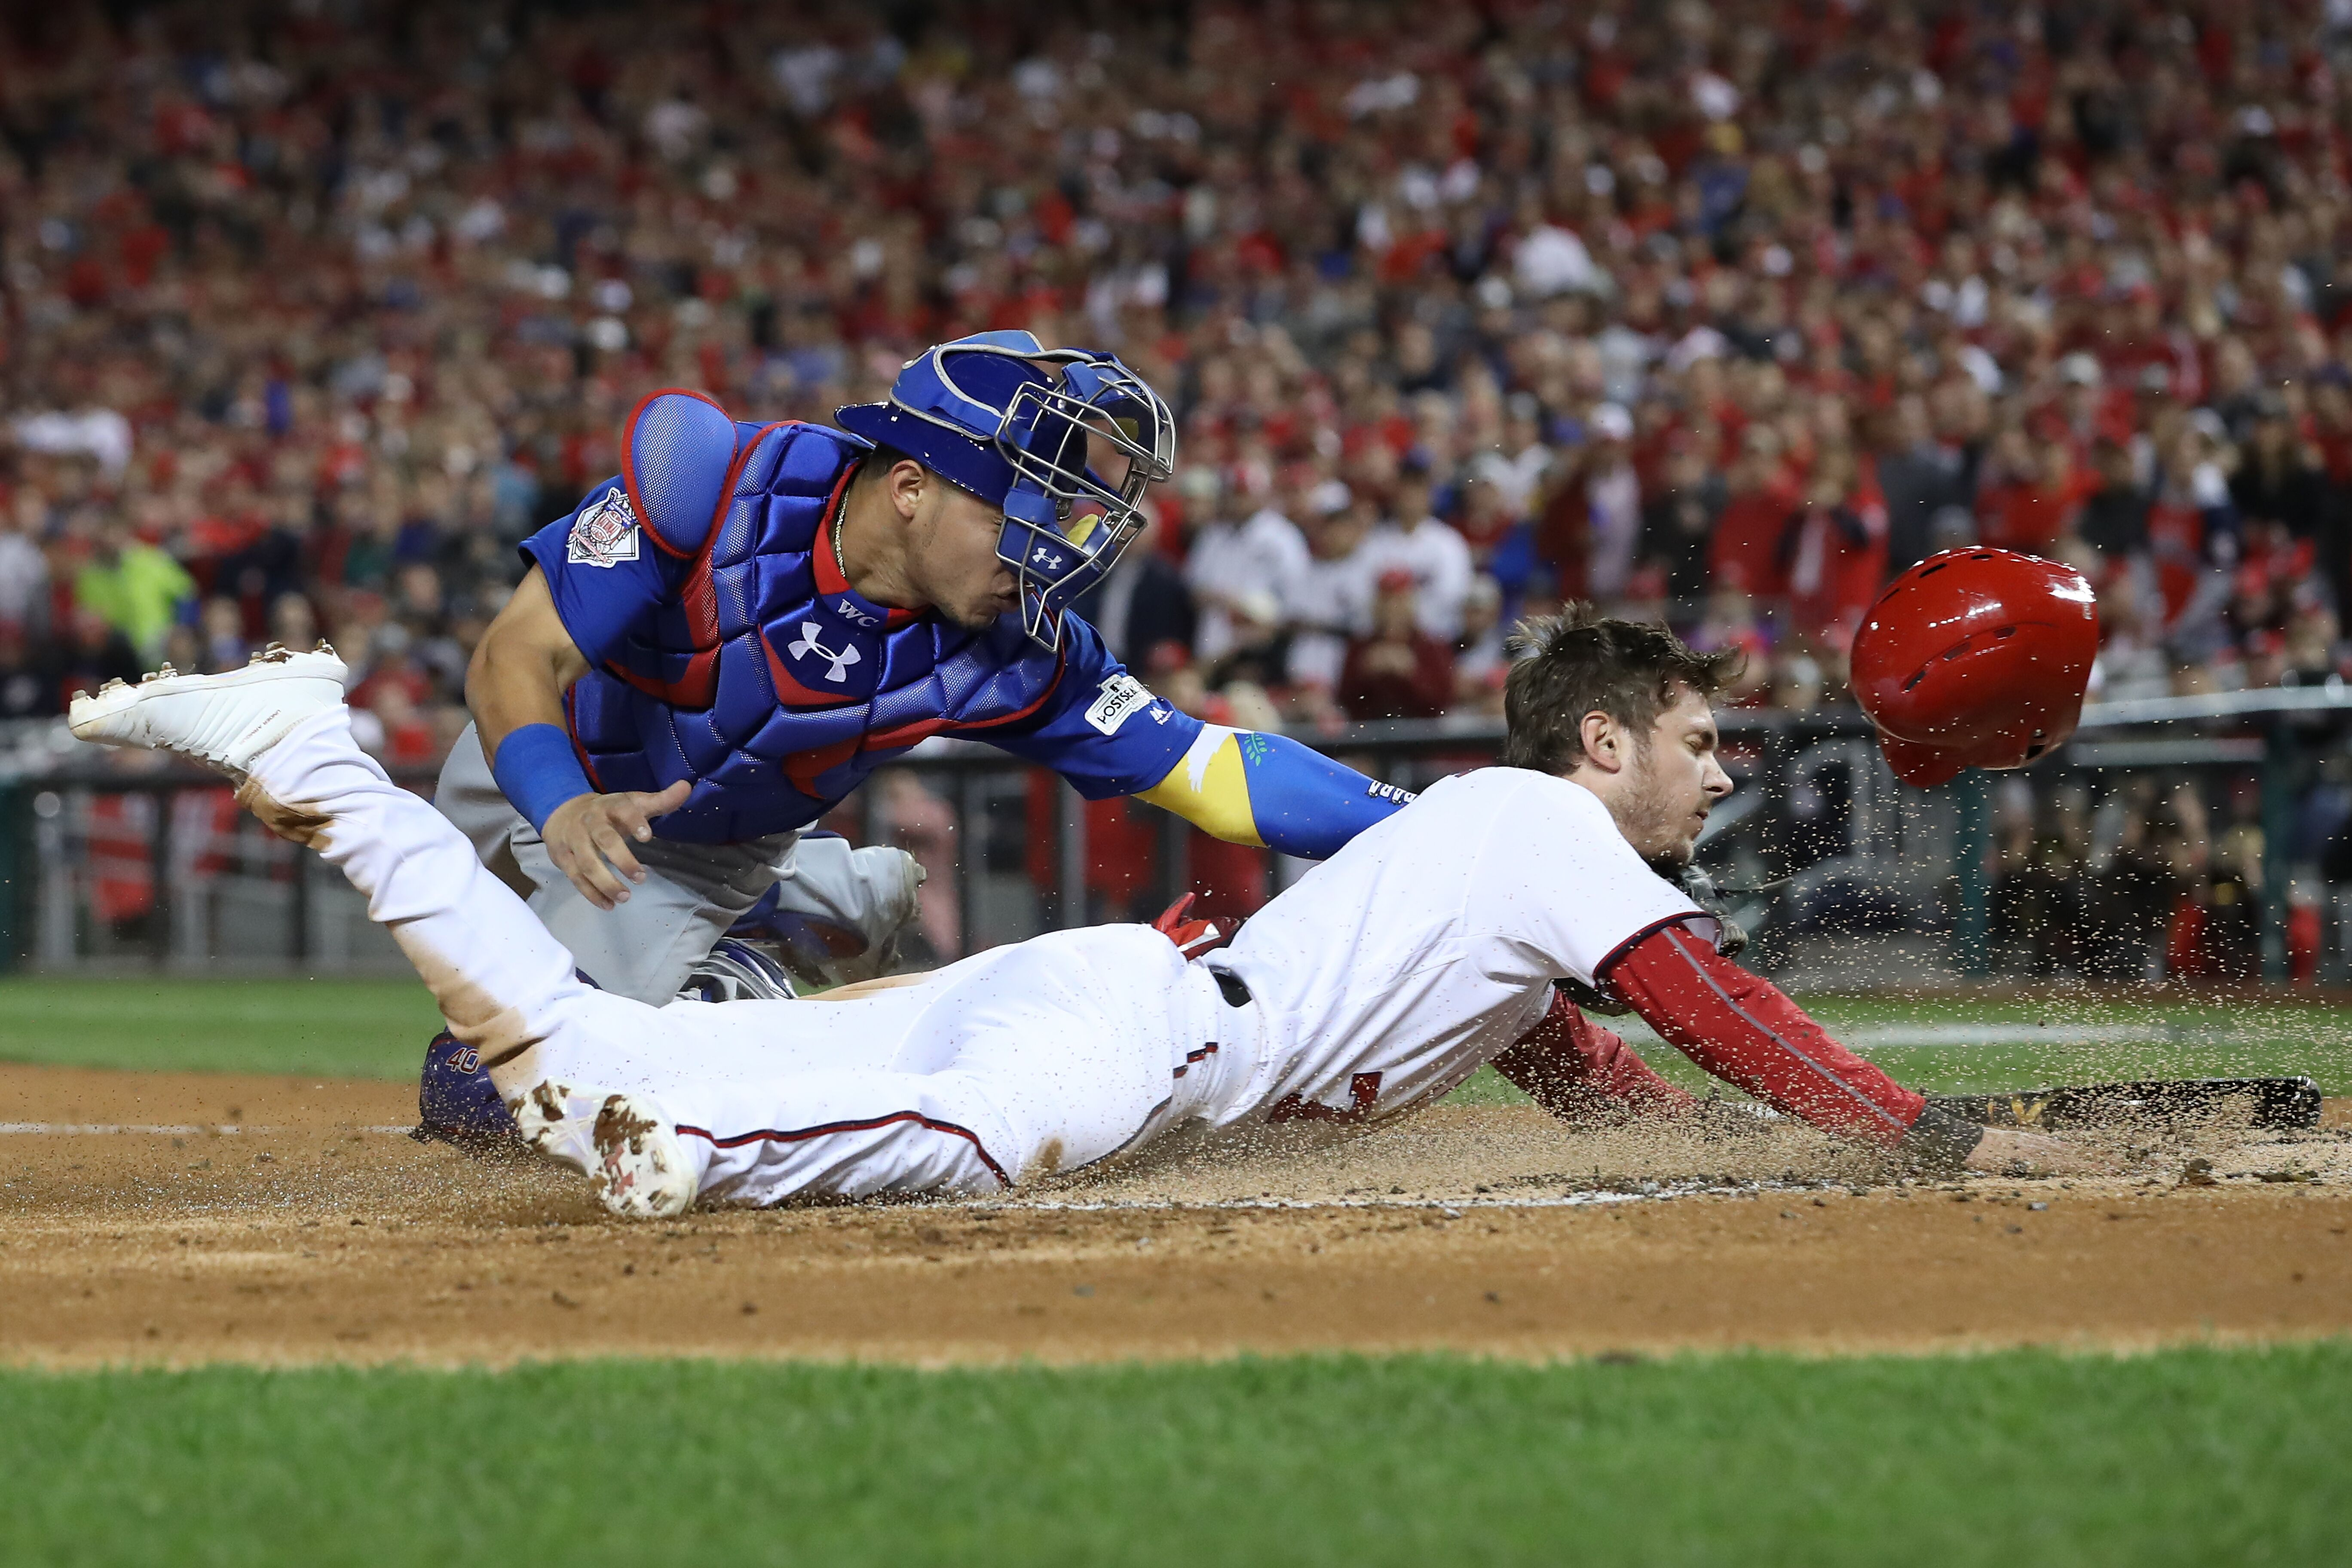 860703786-divisional-round-chicago-cubs-v-washington-nationals-game-five.jpg